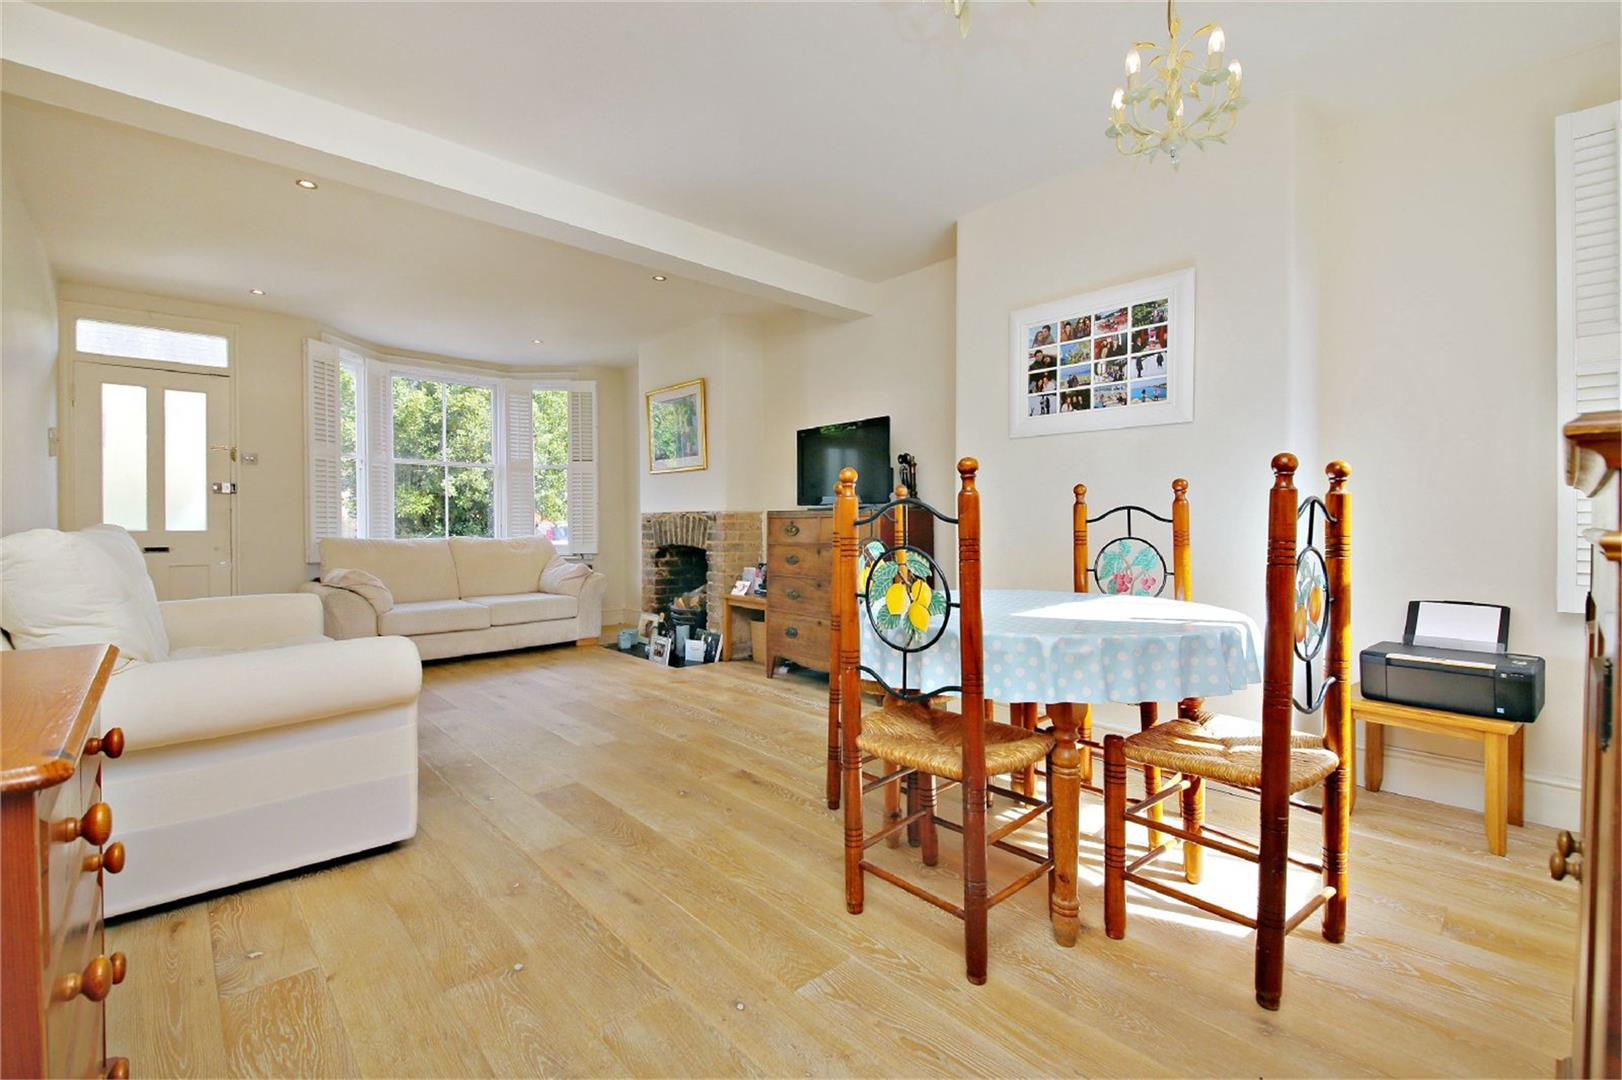 2 bed to rent in Letchmore Heath - (Property Image 1)